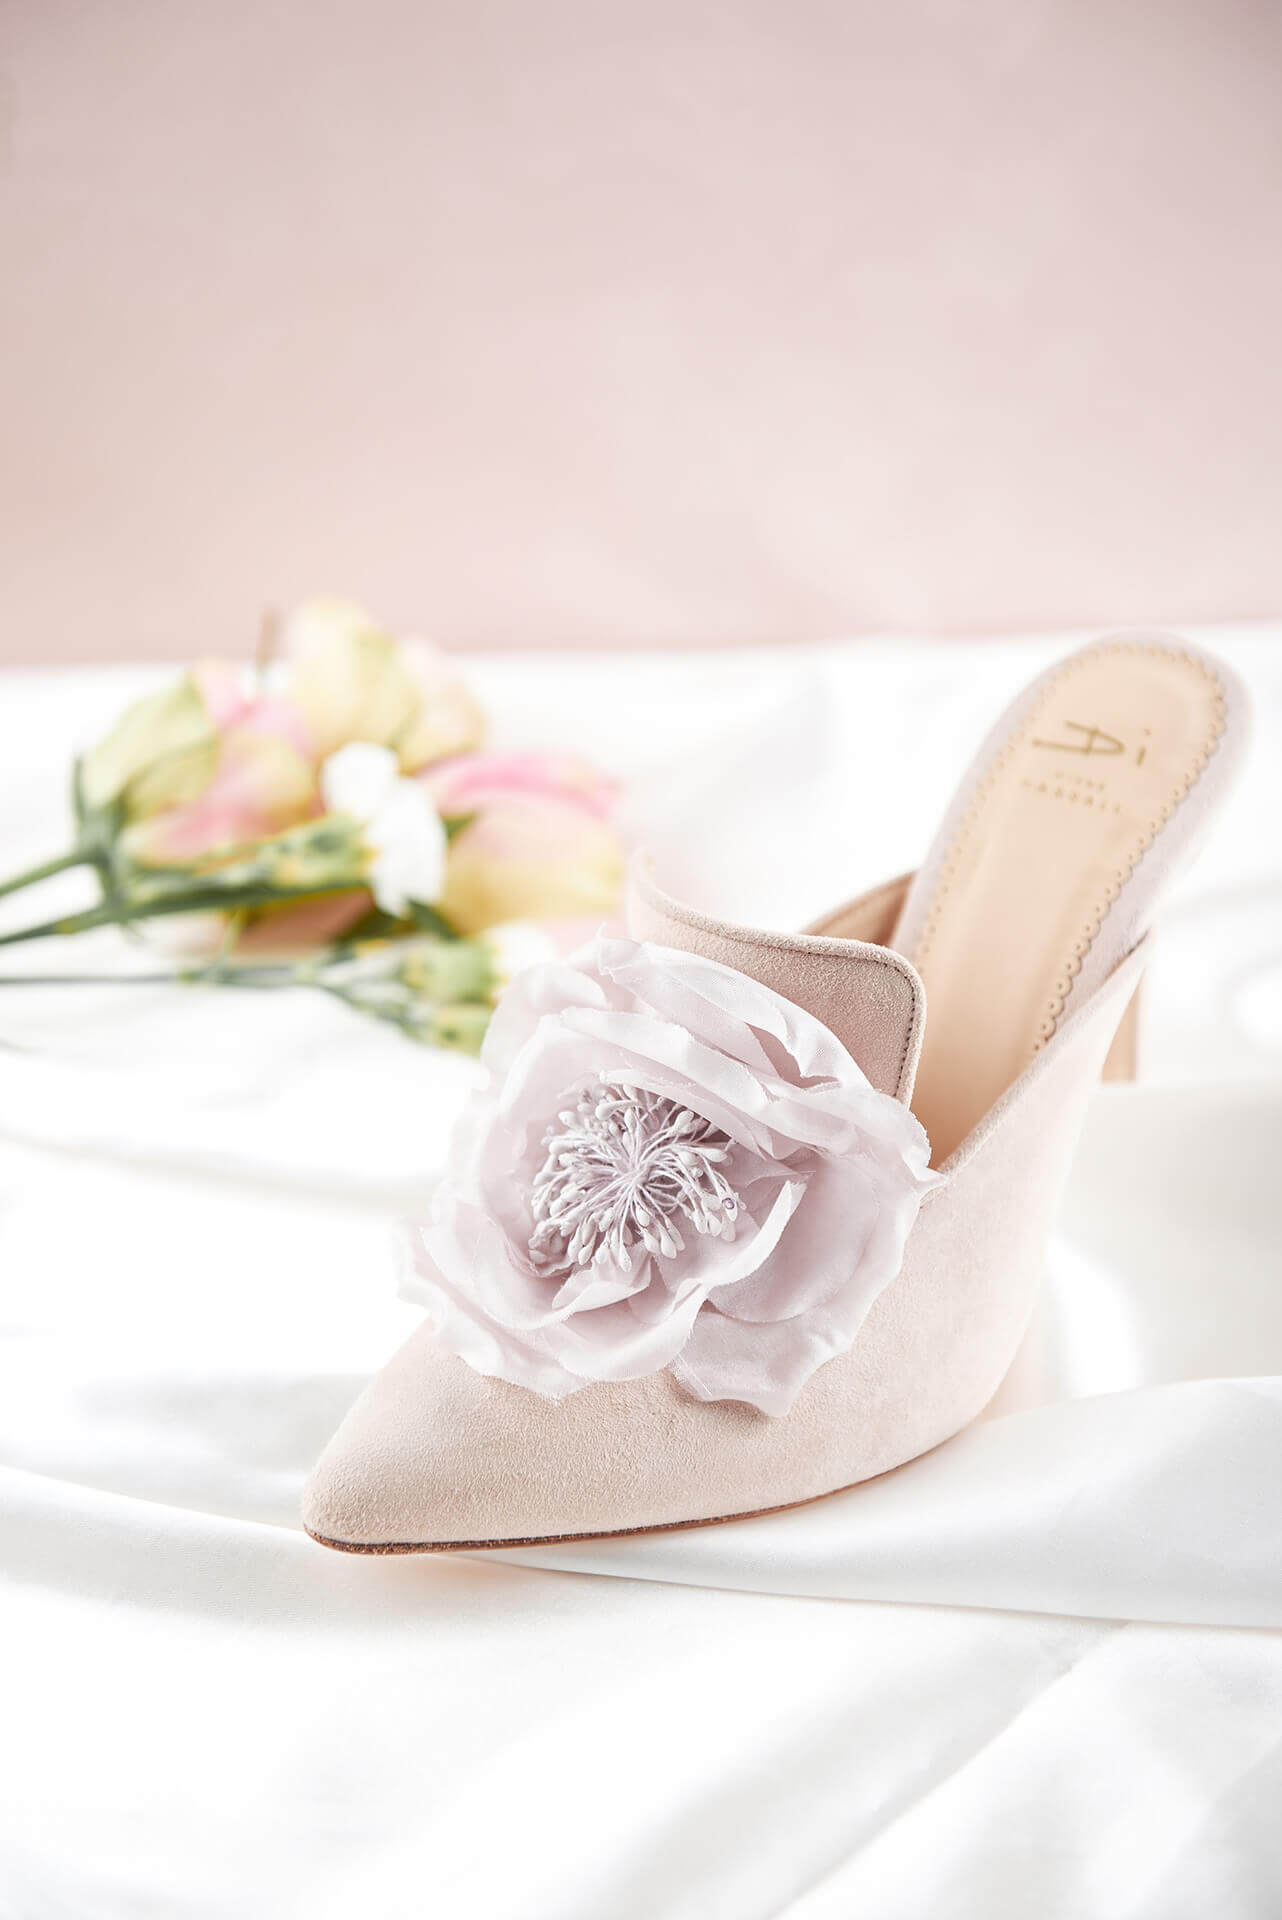 Blush Cassis suede mule with large blush rose detail on front